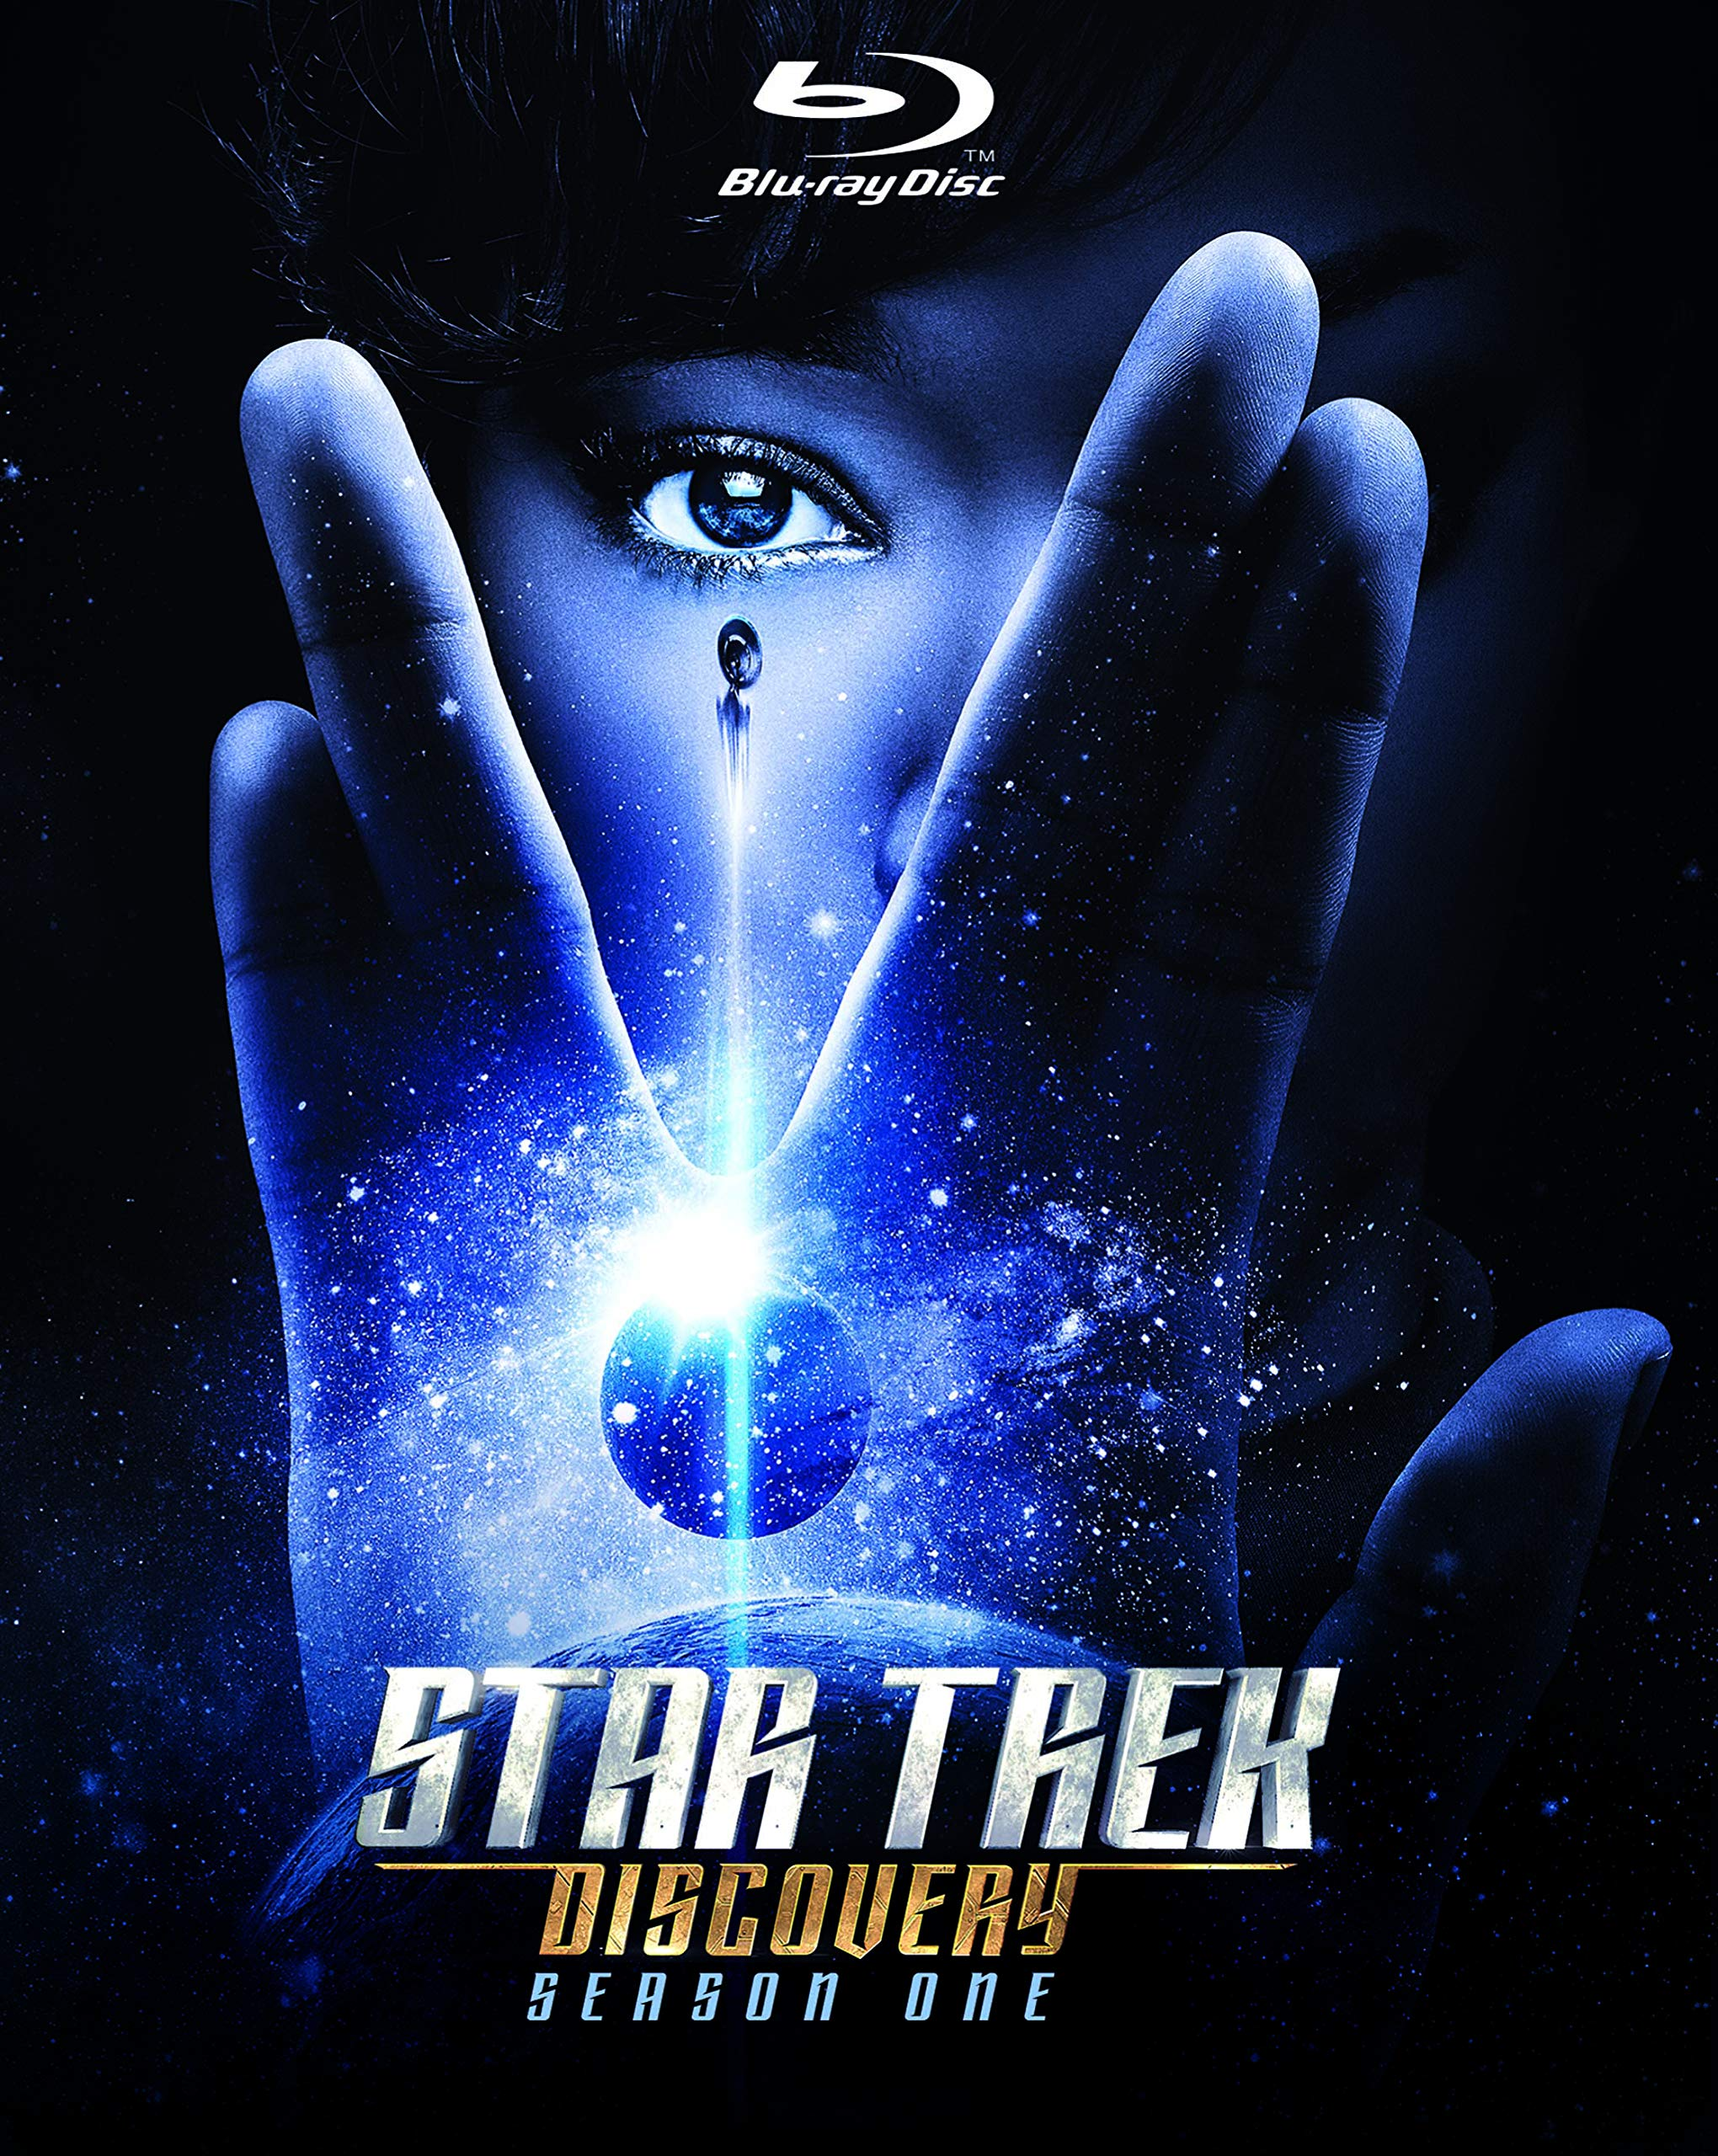 Blu-ray : Star Trek: Discovery: Season One (Boxed Set, Standard Edition, Collector's Edition, Widescreen)